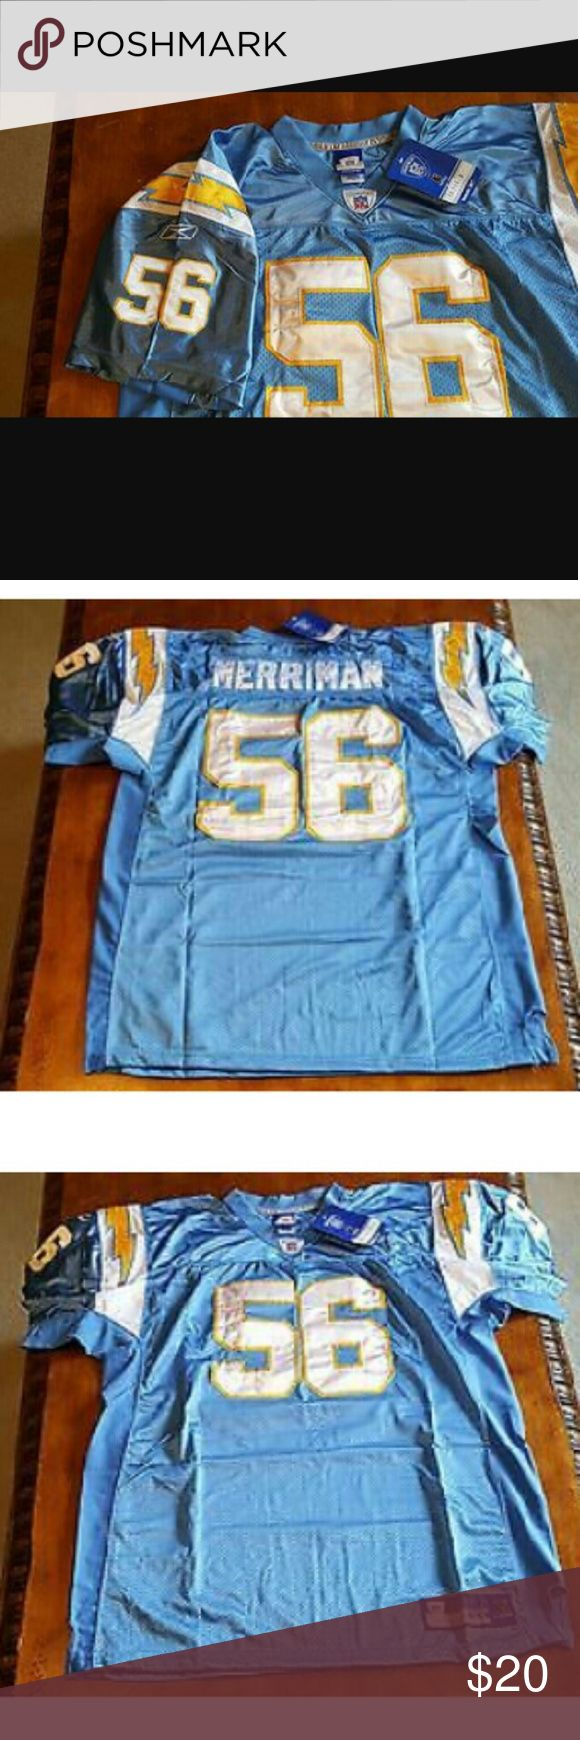 Reebok Official NFL Chargers Jersey Authentic jersey NWT #56 Shawne Merriman Size 60 Don't be afraid to use the offer button on any of my items :) Reebok Shirts